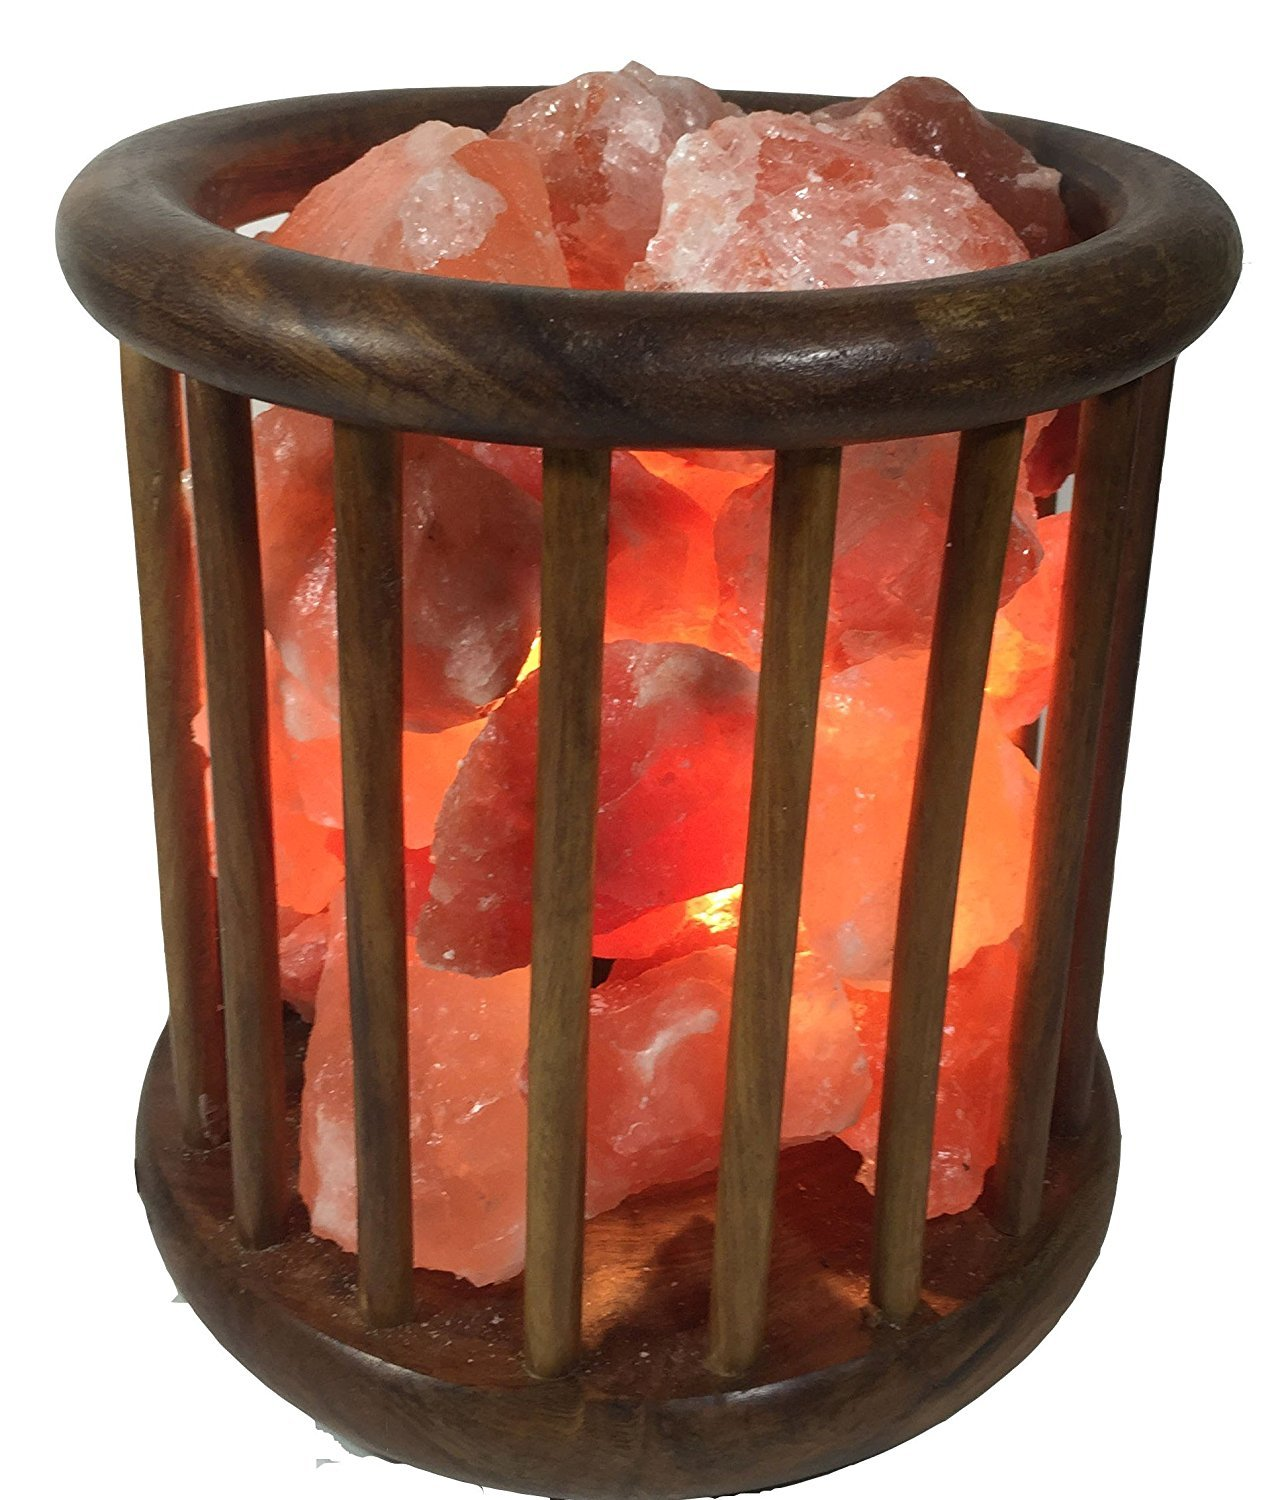 KHEWRA : Natural Crystal Air Purifying Wood Basket Himalayan Salt Lamp with Pure Salt Chunks with UL-approved Cord and 15-Watt Light Bulb